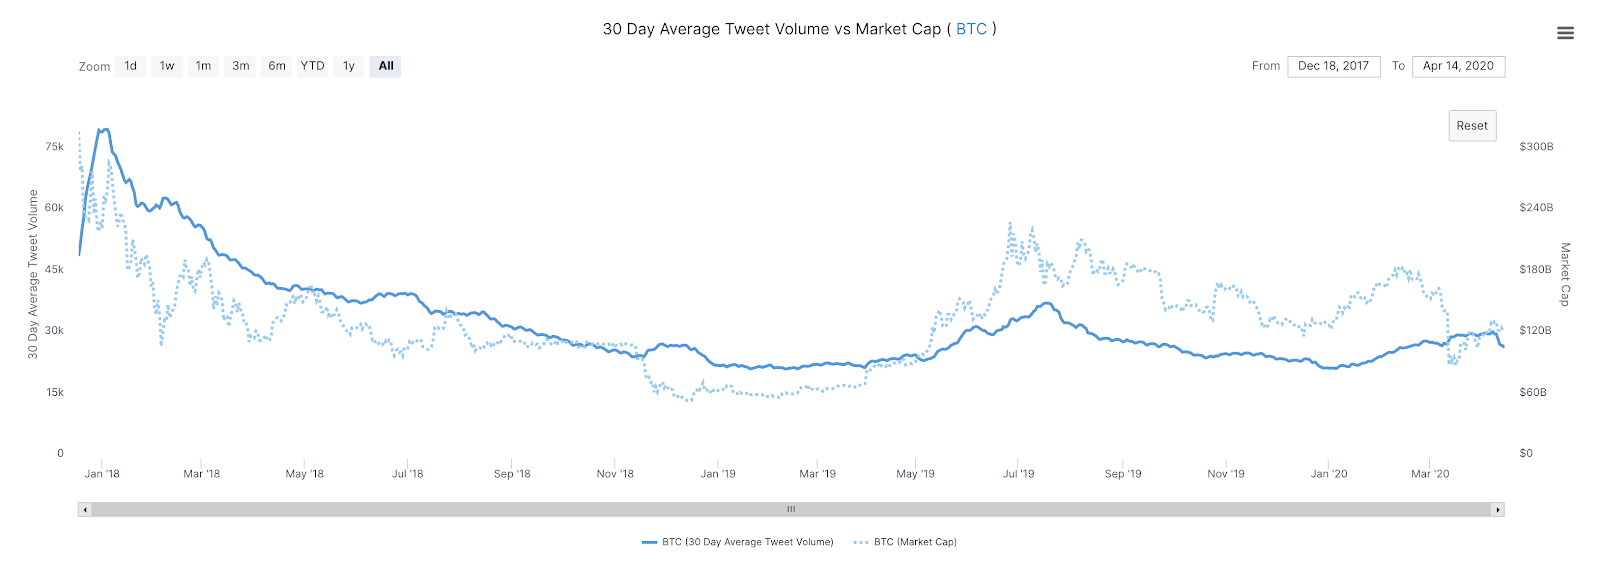 Bitcoin's 30-day average tweet volume vs. market cap